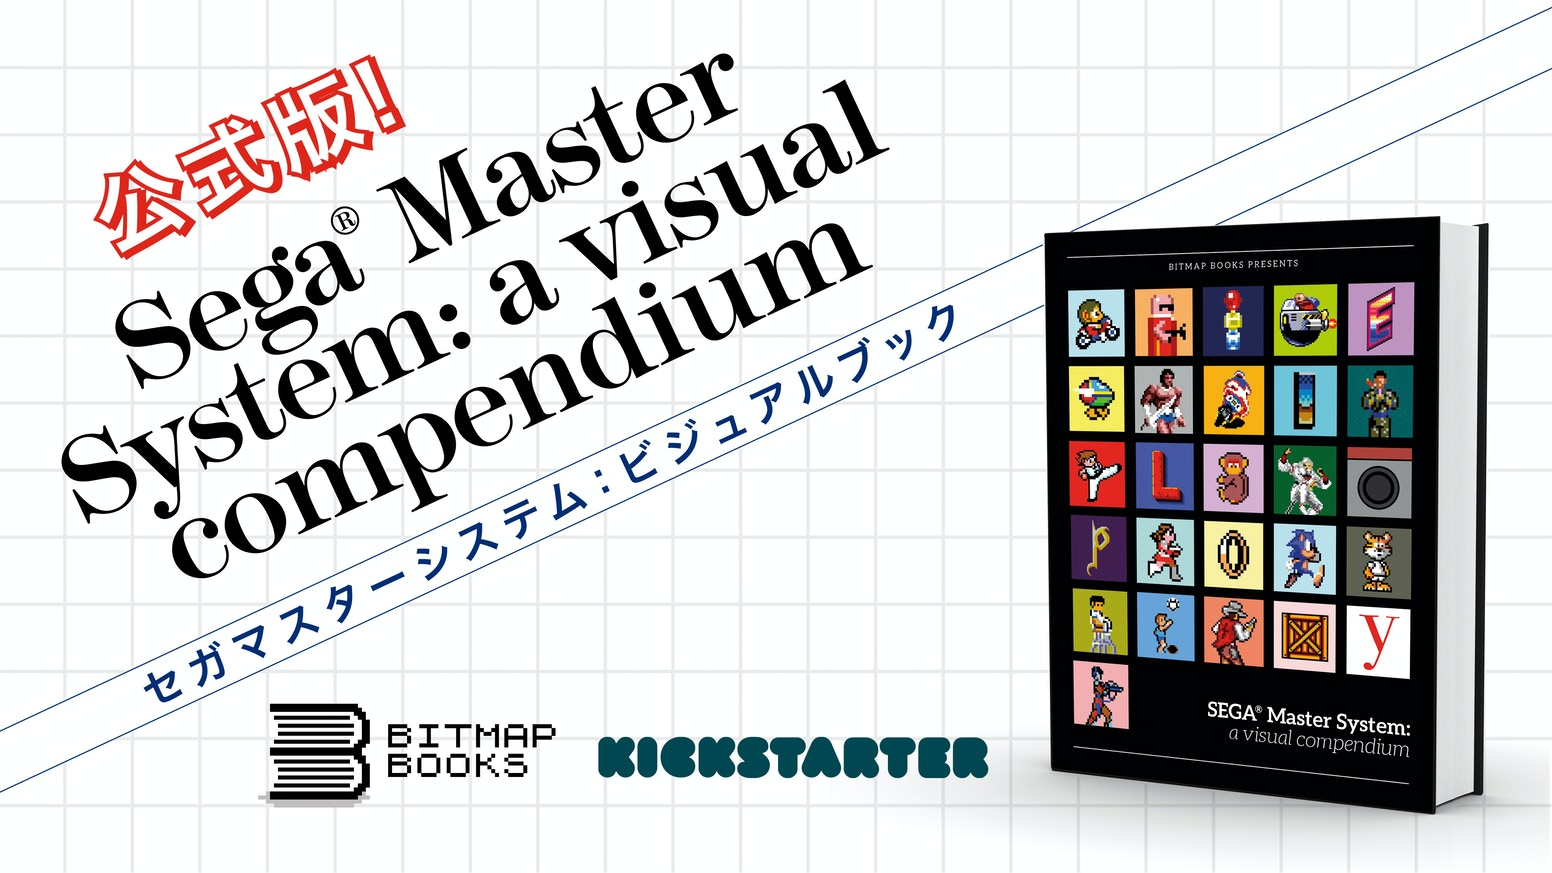 Bitmap Books are proud to present an official visual tribute to the iconic SEGA® Master System home console